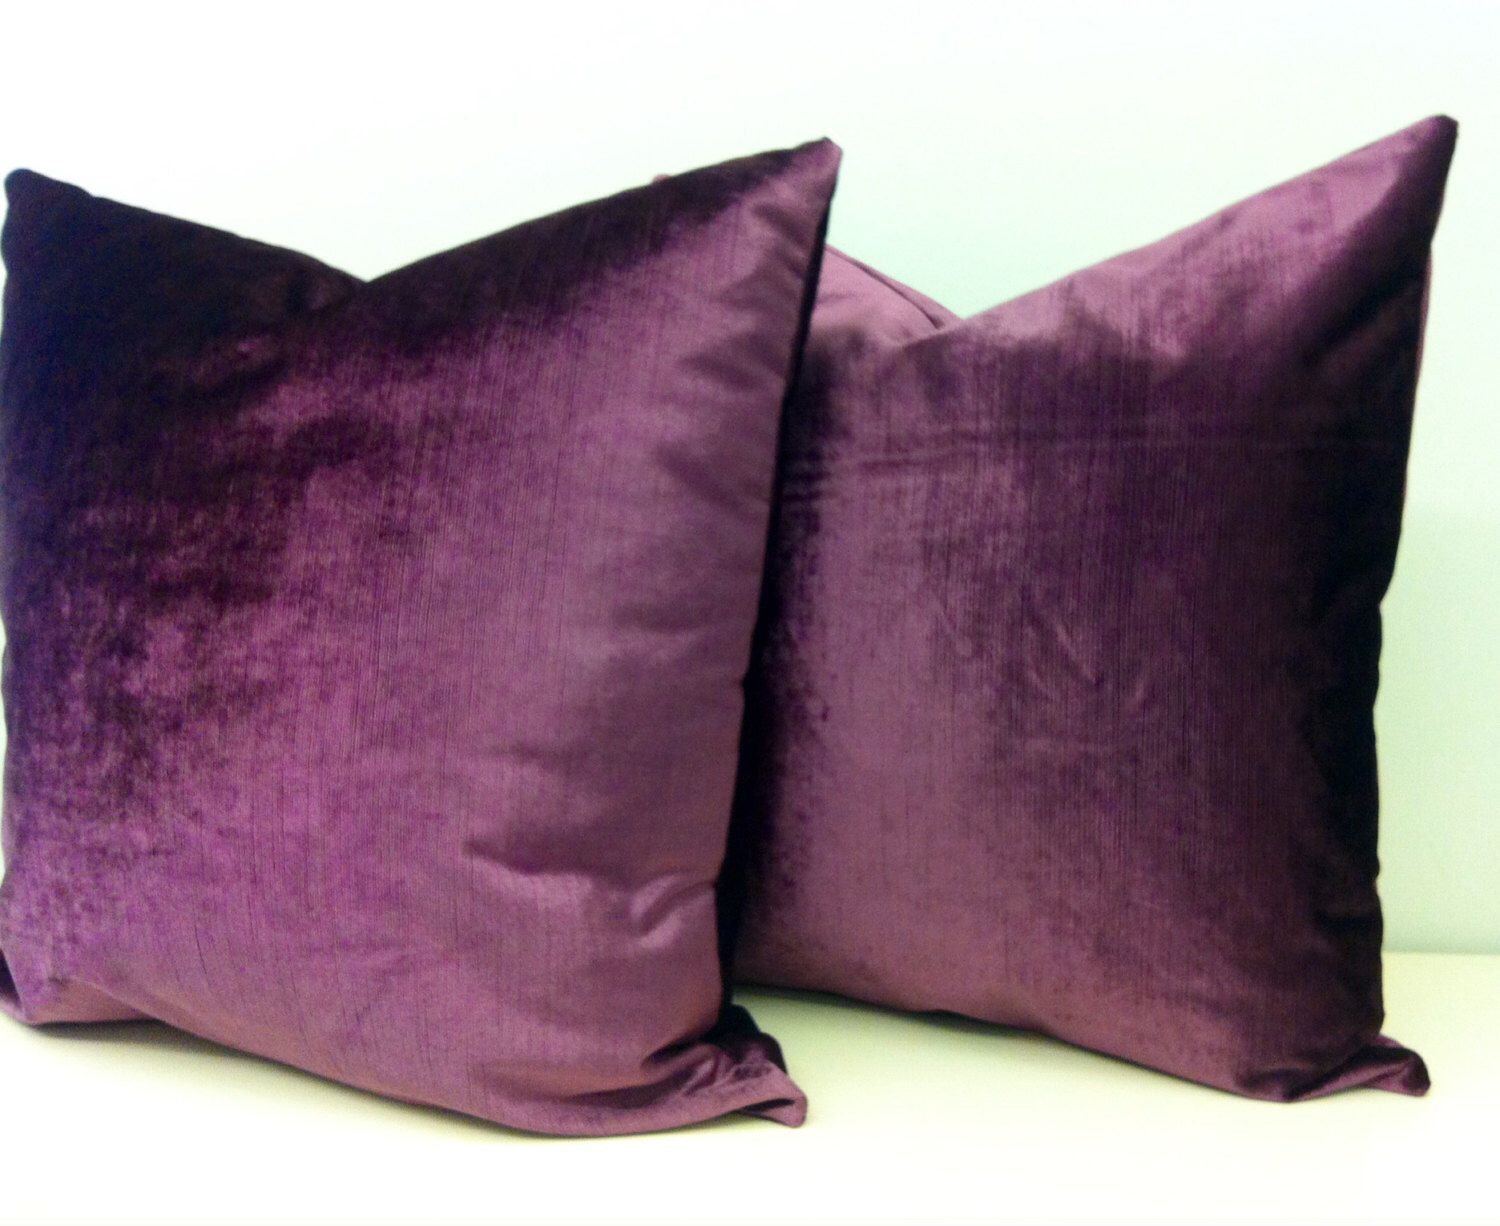 Two Plum Velvet Pillow Covers, Velvet Pillow, Decorative Pillows, Purple  Velvet Pillow Covers